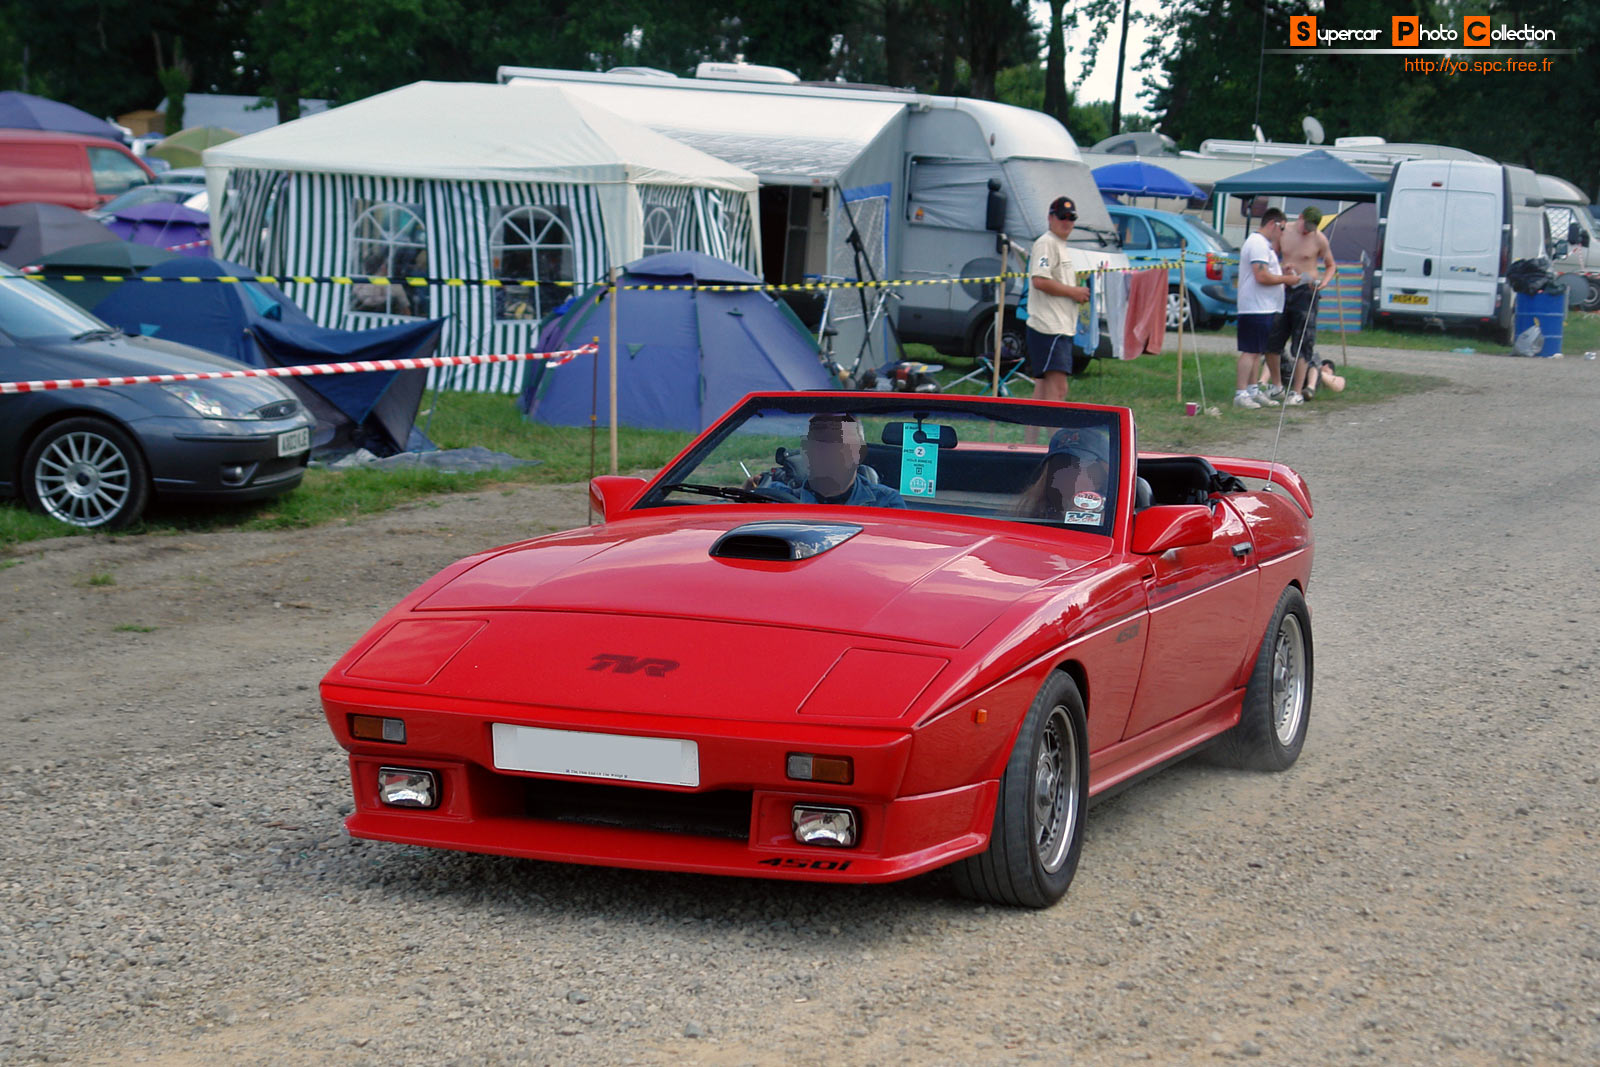 tvr 450 pictures